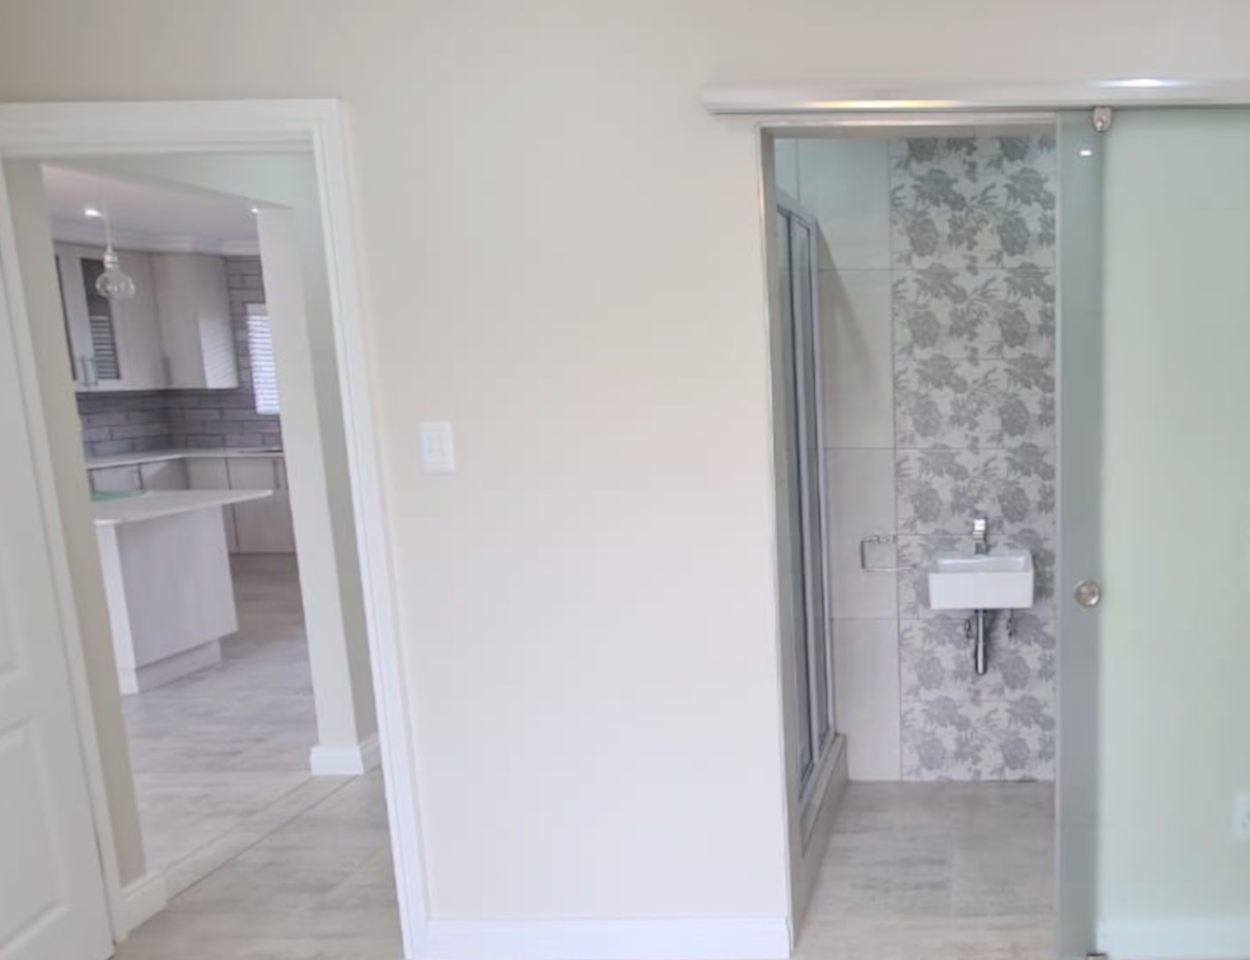 Home renovations (bathroom - after) by residential construction company, Schoeman Trio Builders - Mossel Bay